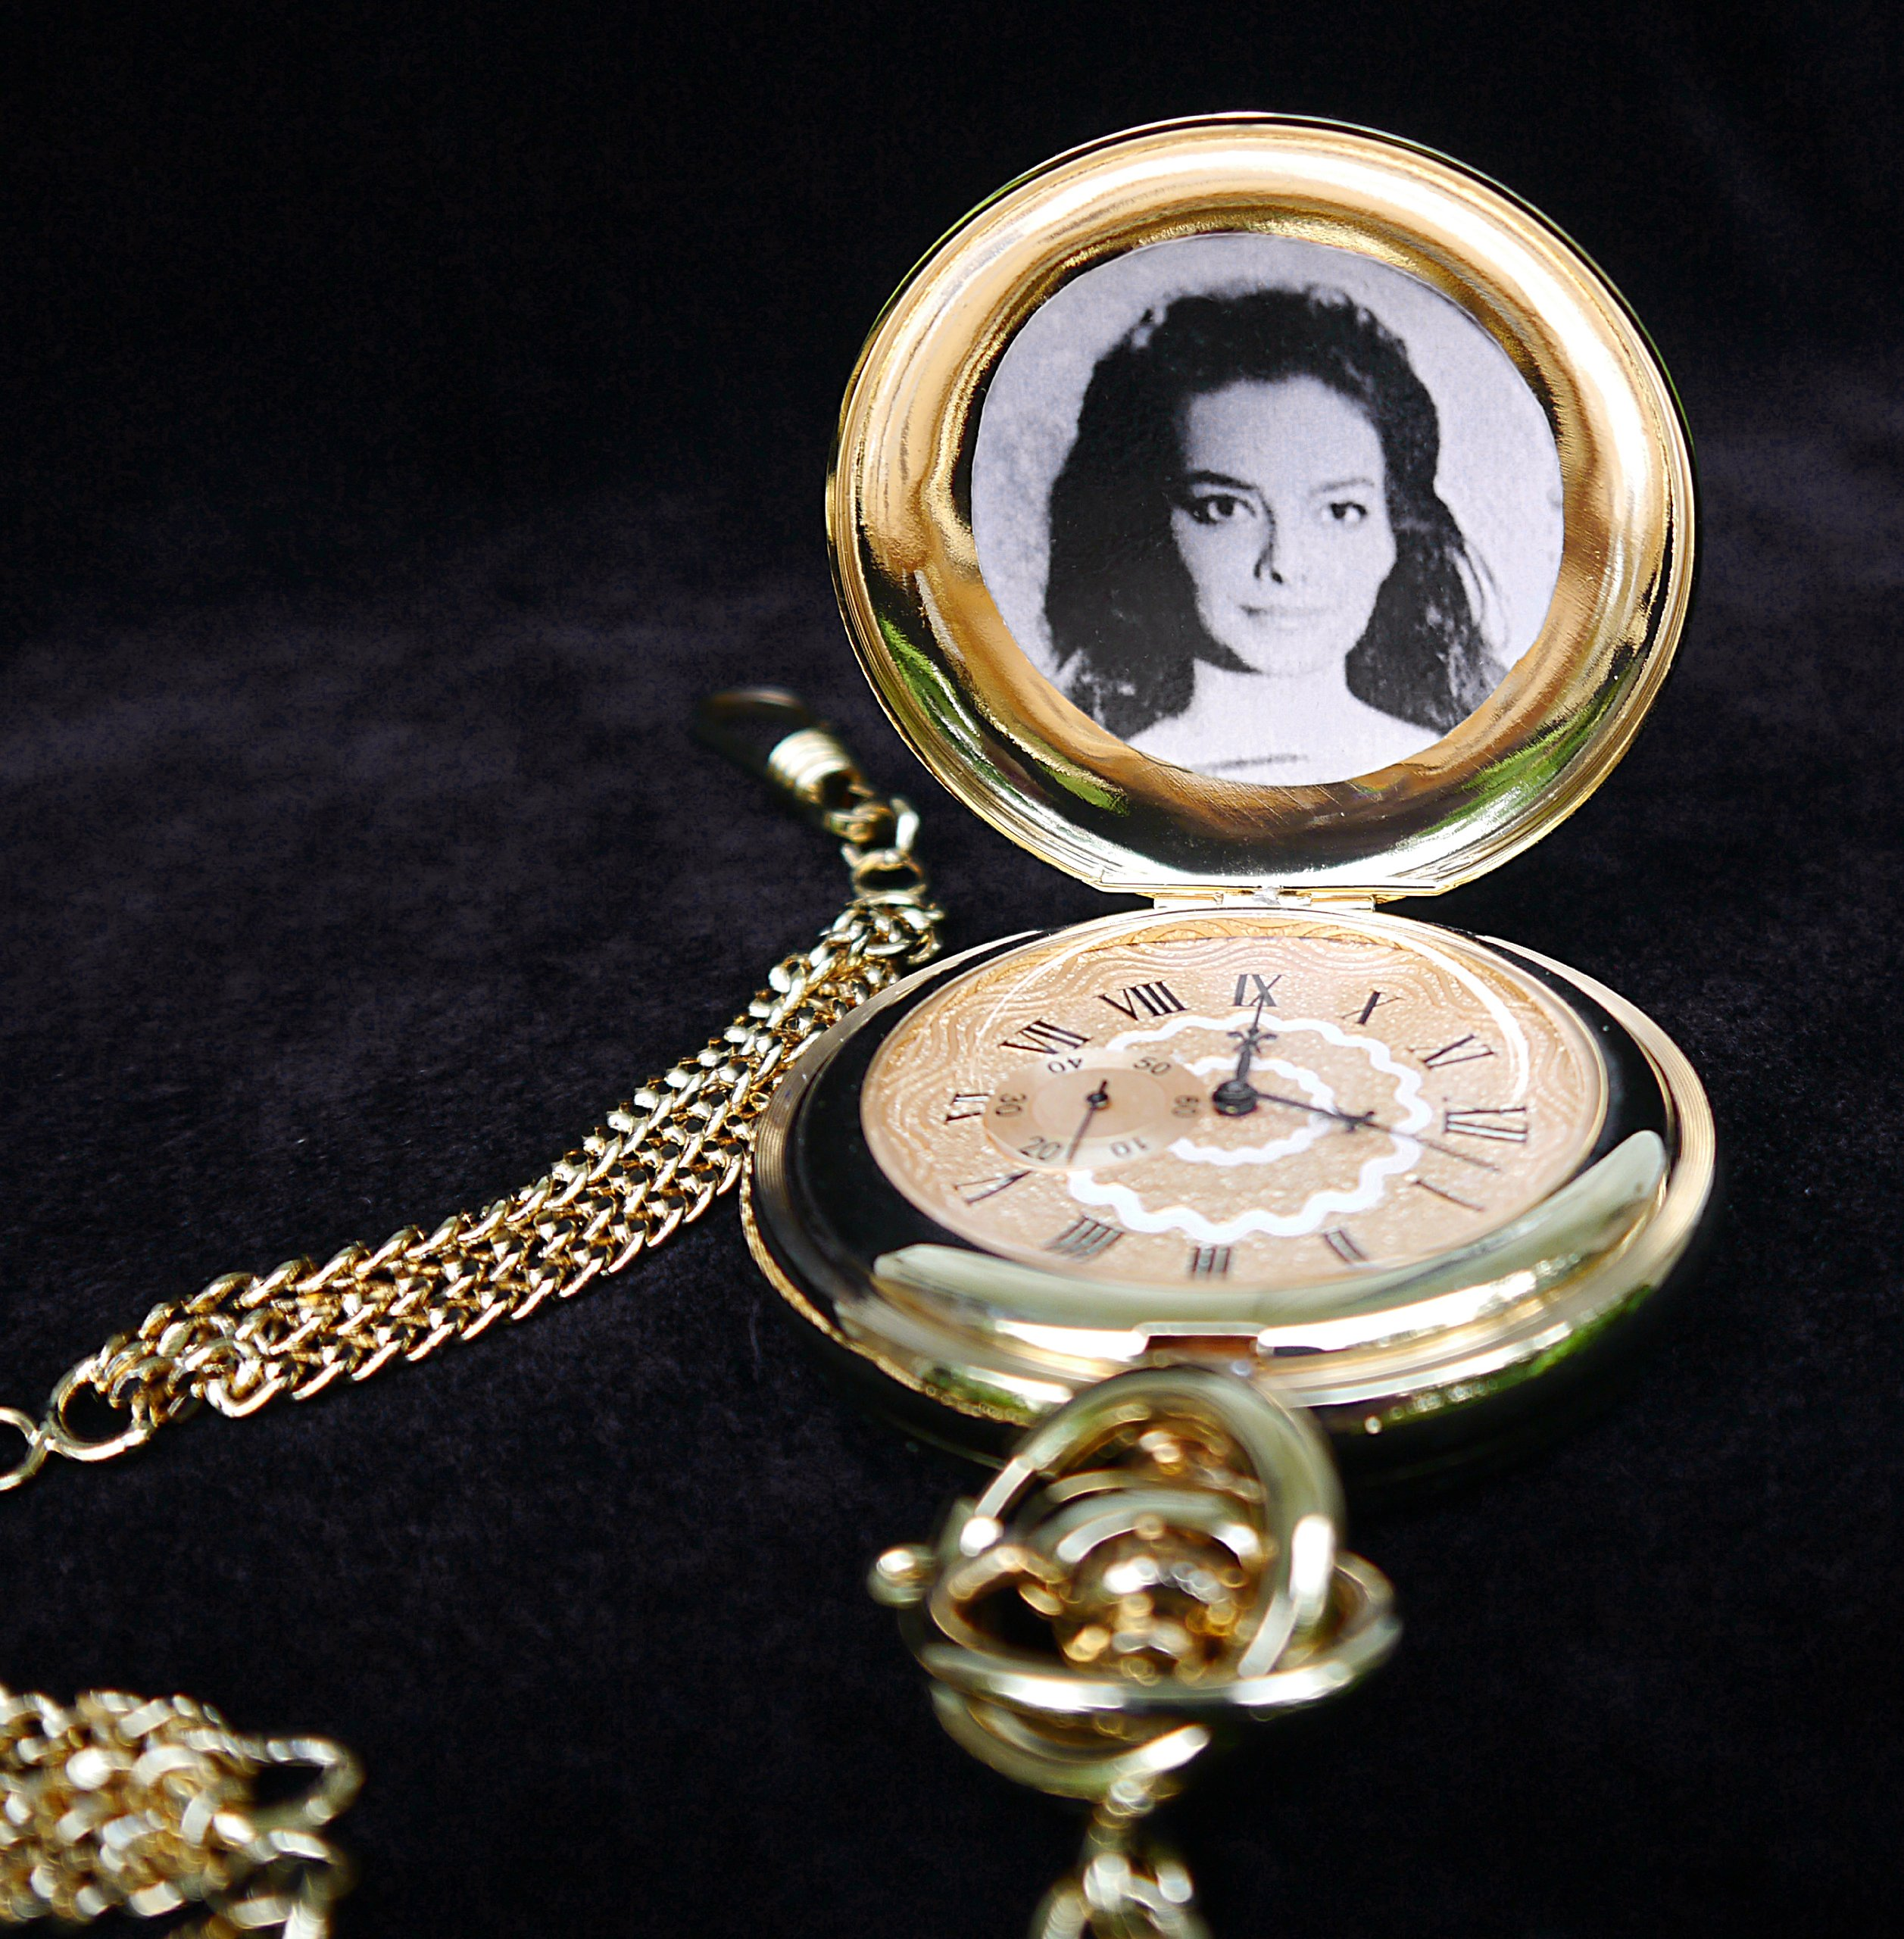 Music Pocket Watch Movie Prop from FOR A FEW DOLLARS MORE - Clint Eastwood + Lee Van Cleef - Great Gift by Straightline